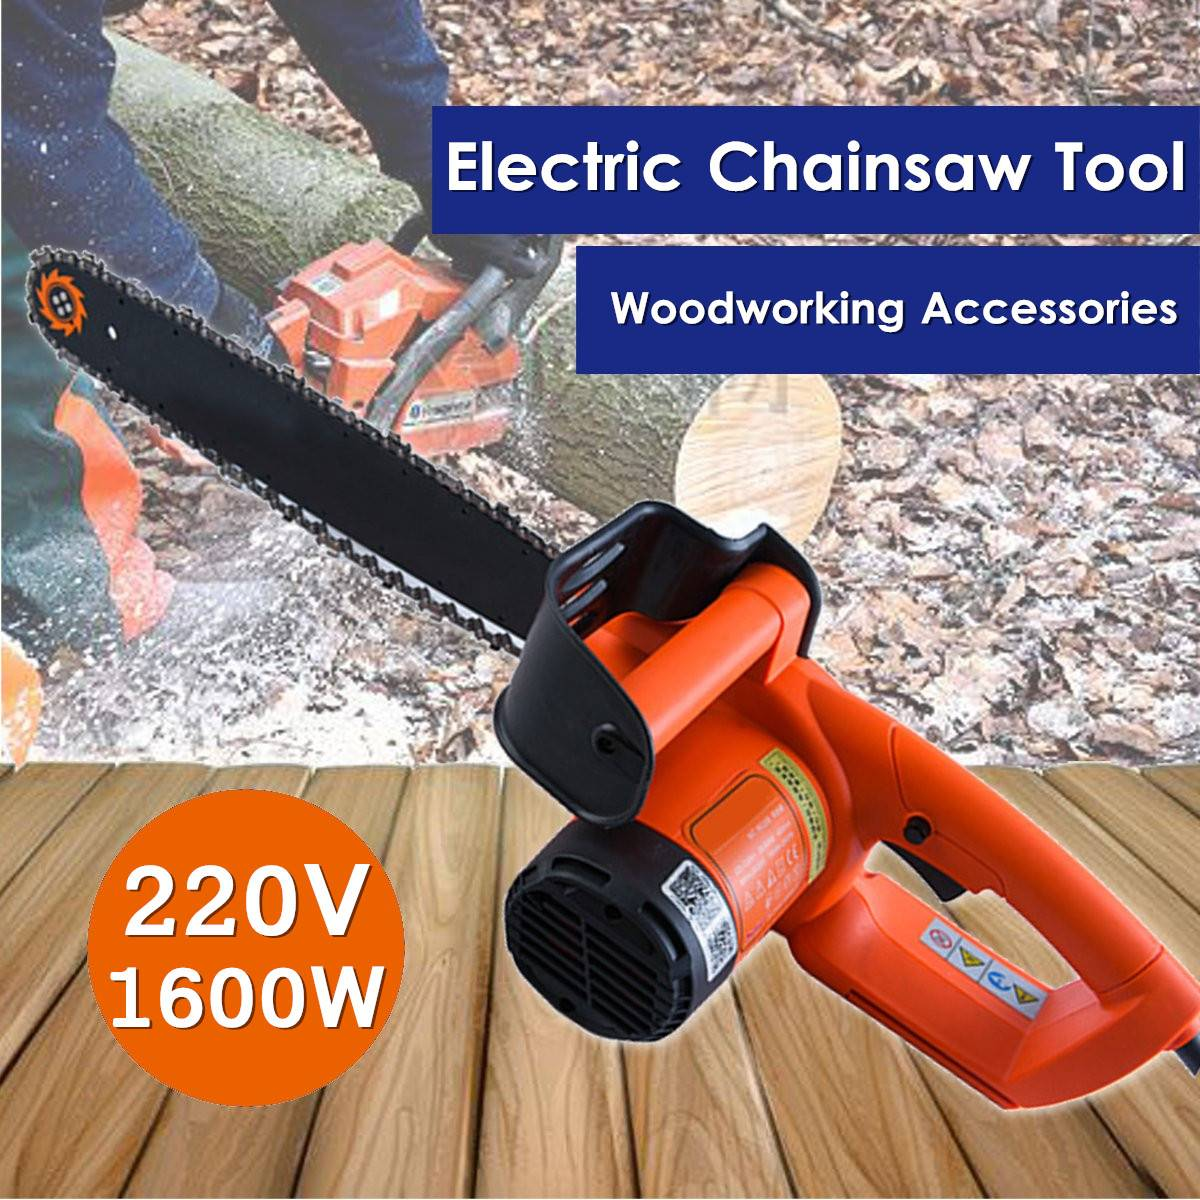 220V 1600W Electric Chainsaw Wood Cutting Saws Grinding Bar Machine Handheld Woodworking Tool Multifunction Garden Power Tools